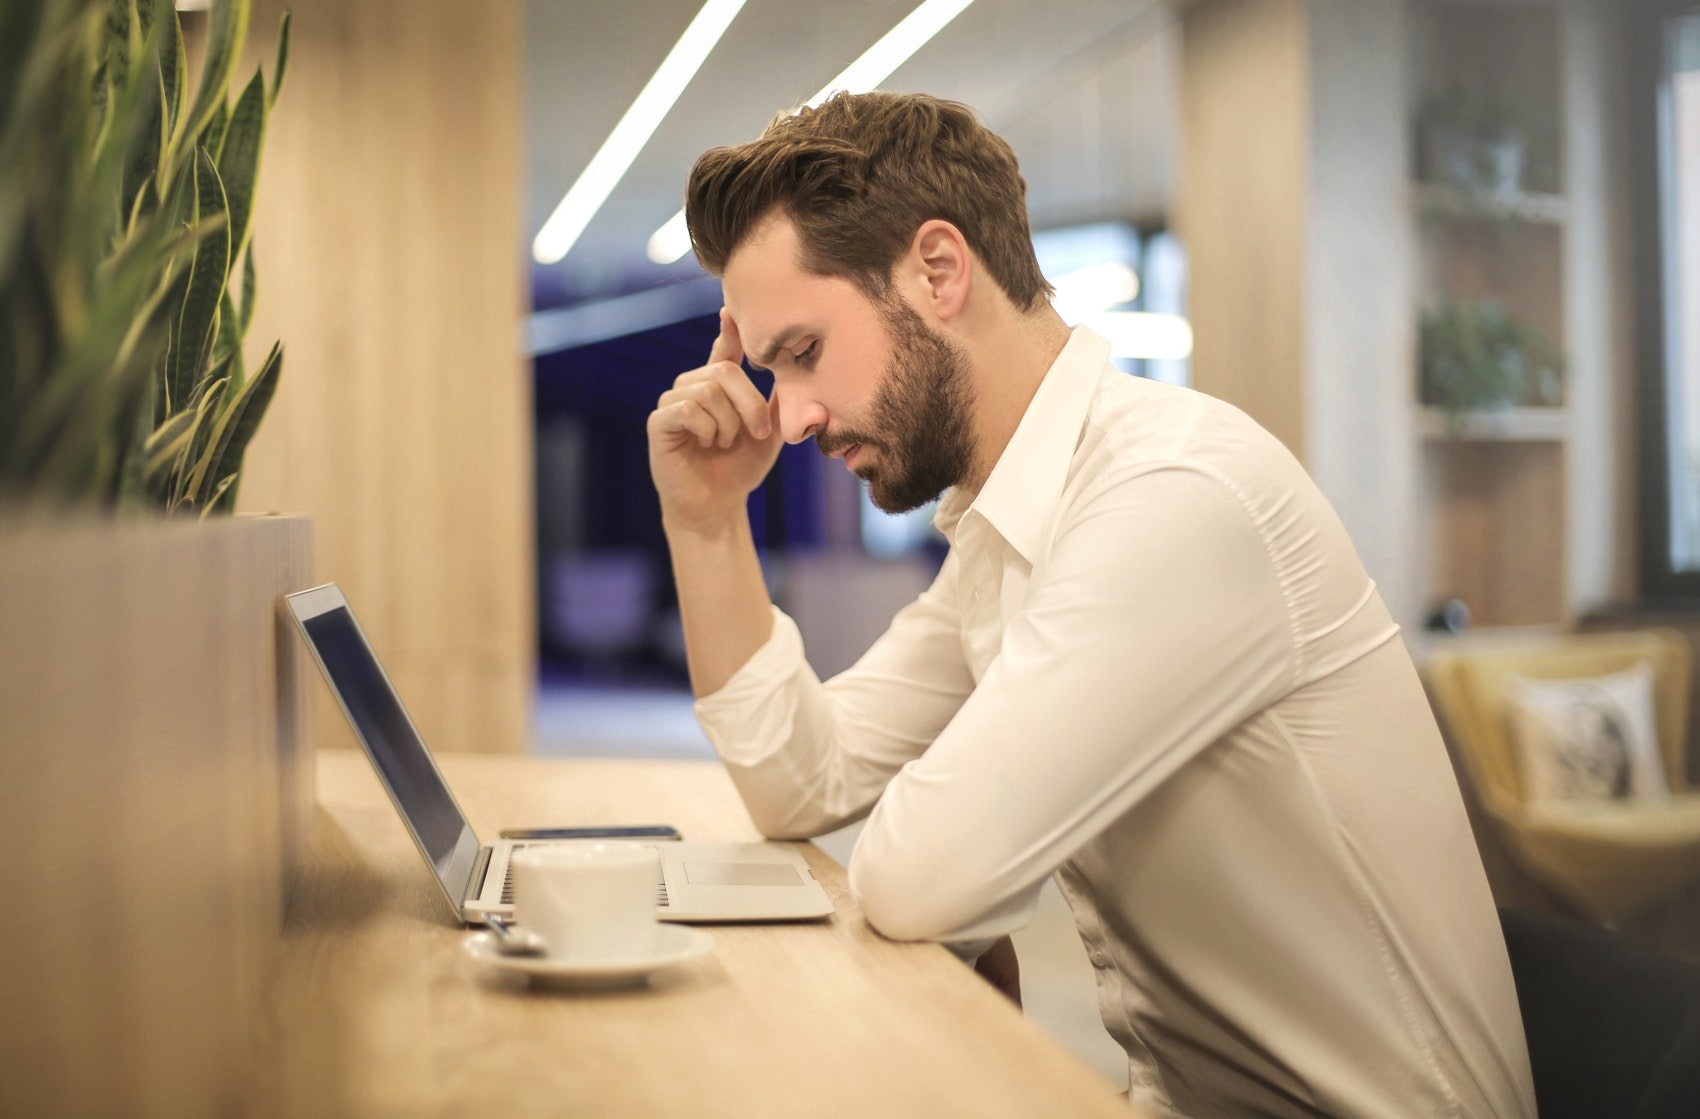 Sales rep rubbing their head while looking at their computer